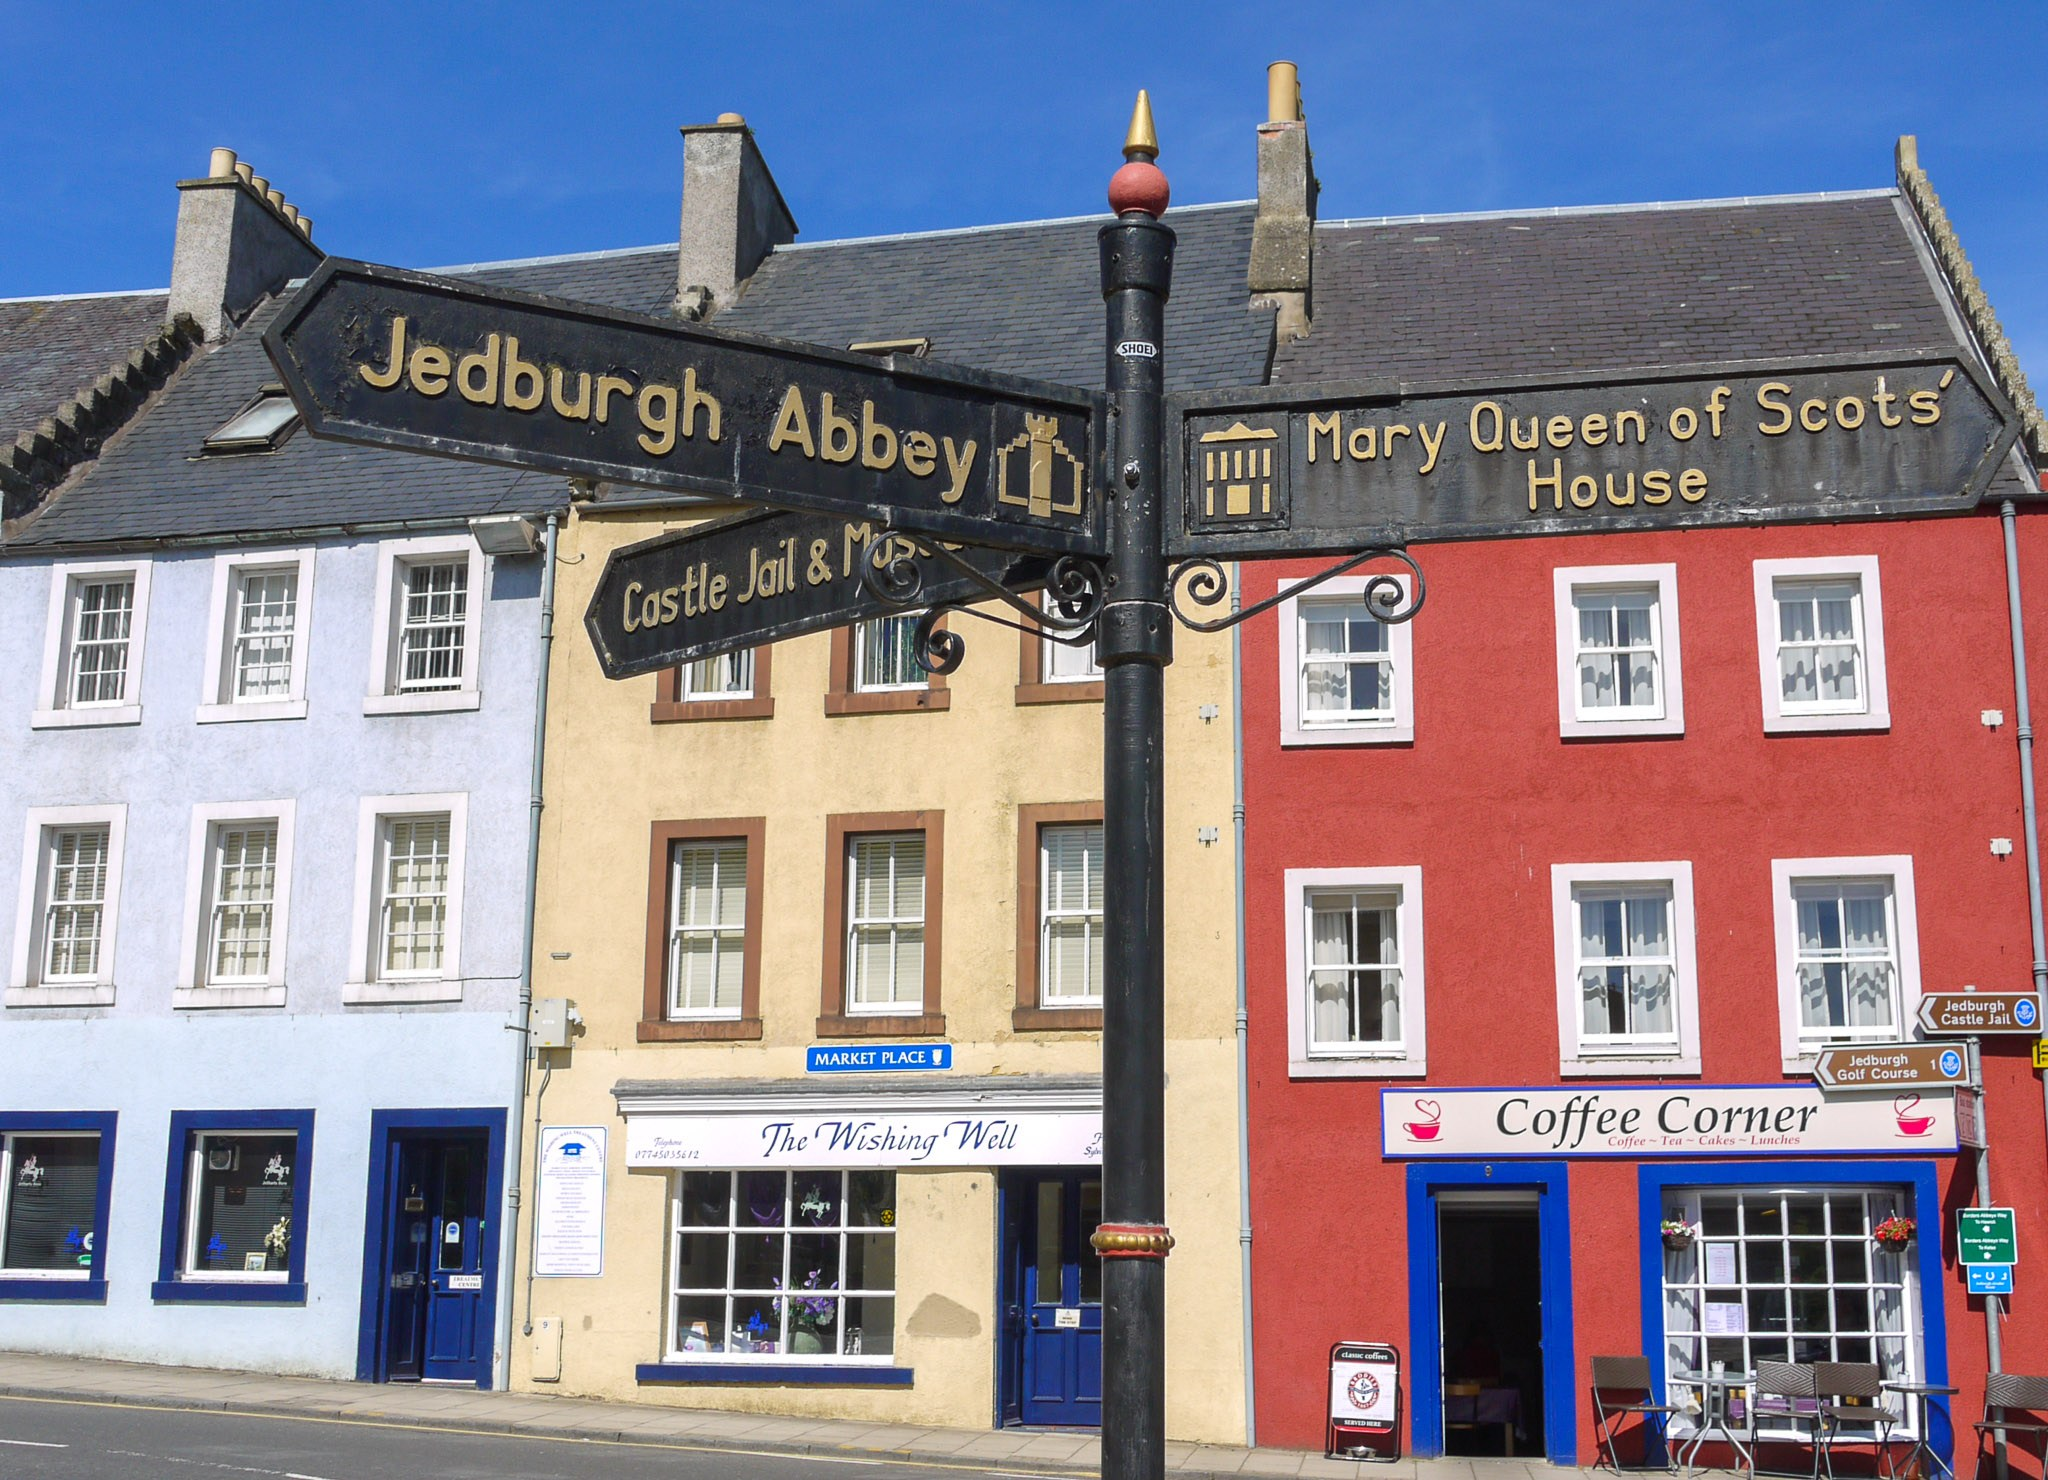 10 Great Ways to Spend a Day in Jedburgh